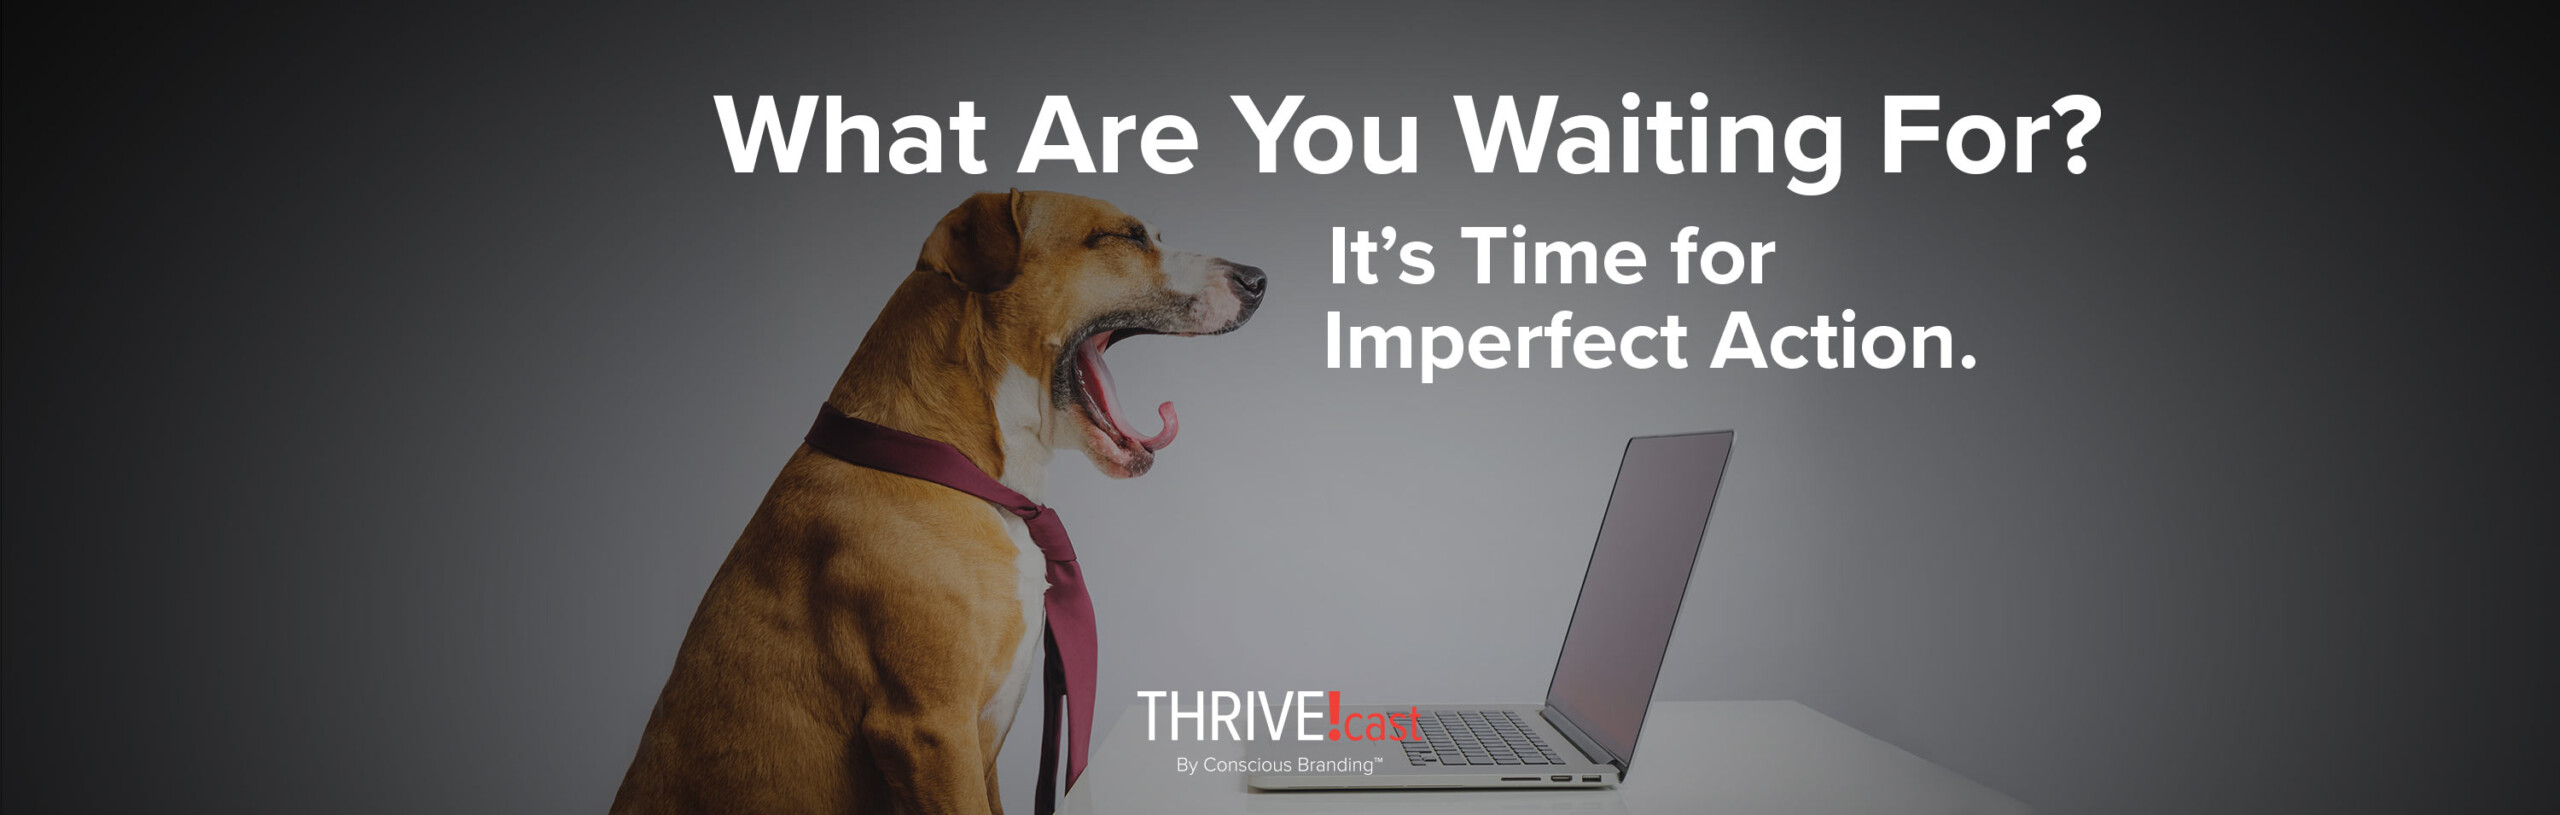 Thrivecast imperfect action